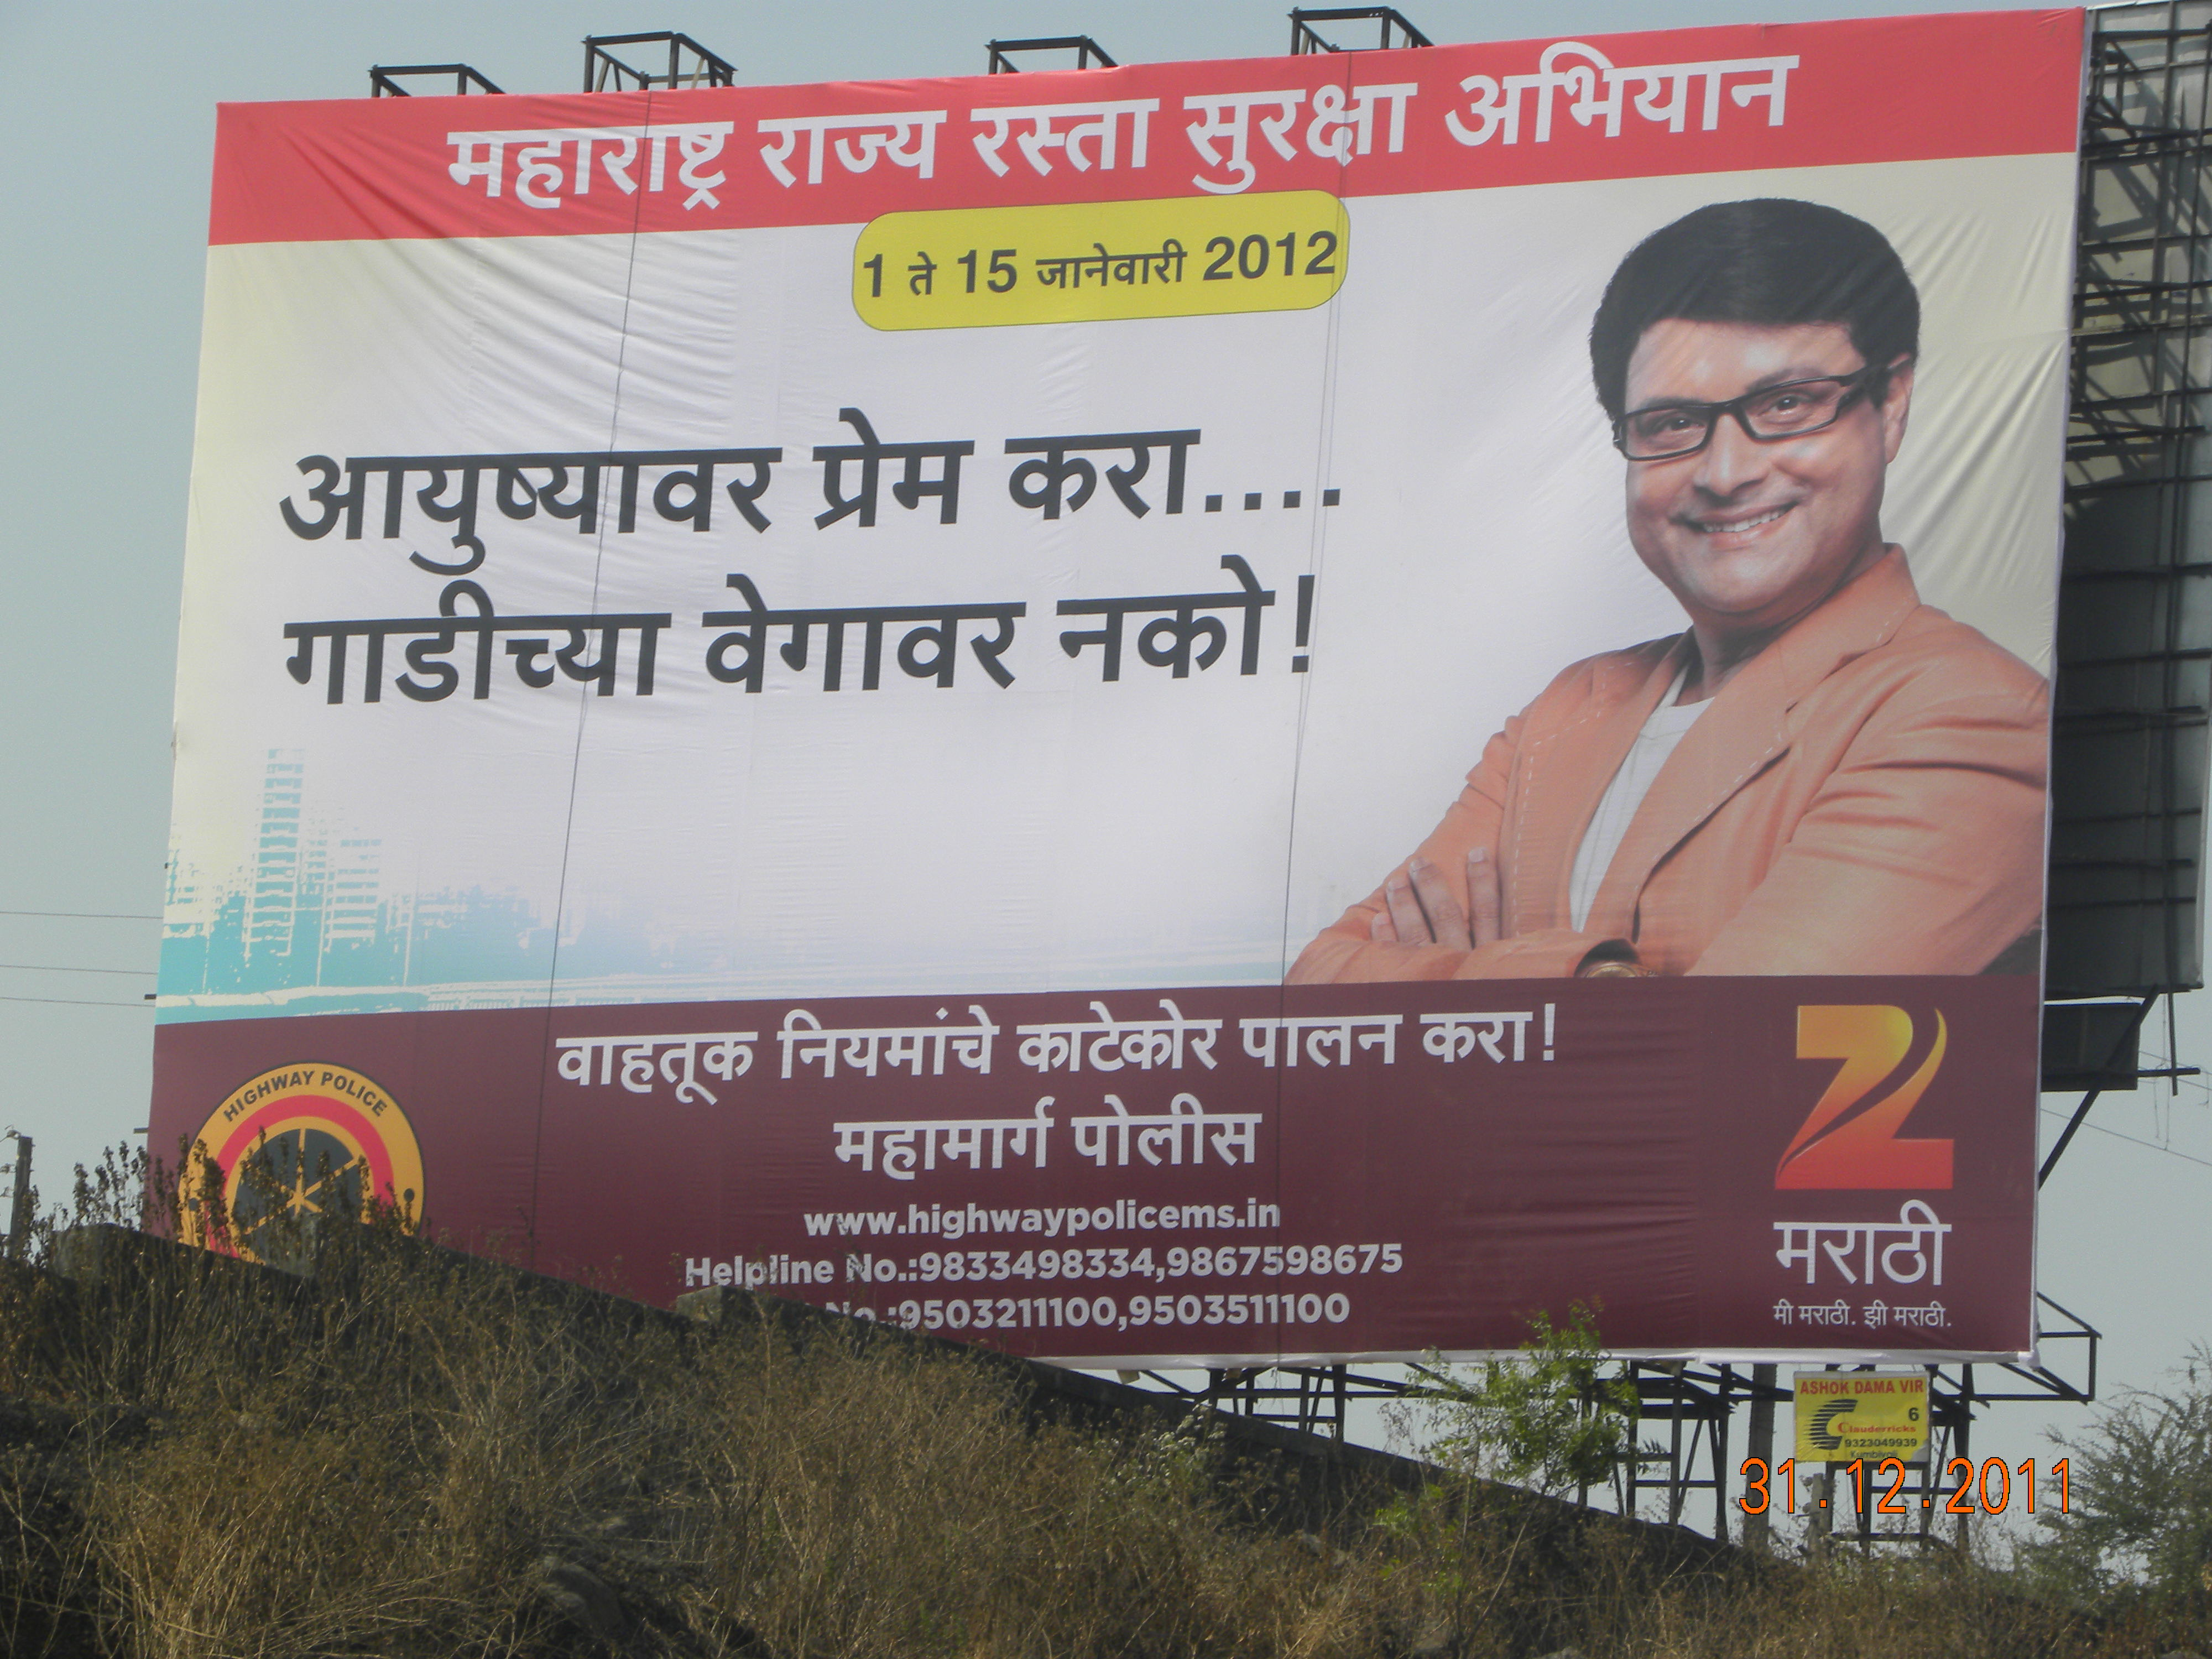 pics for gt road safety slogans in marathi